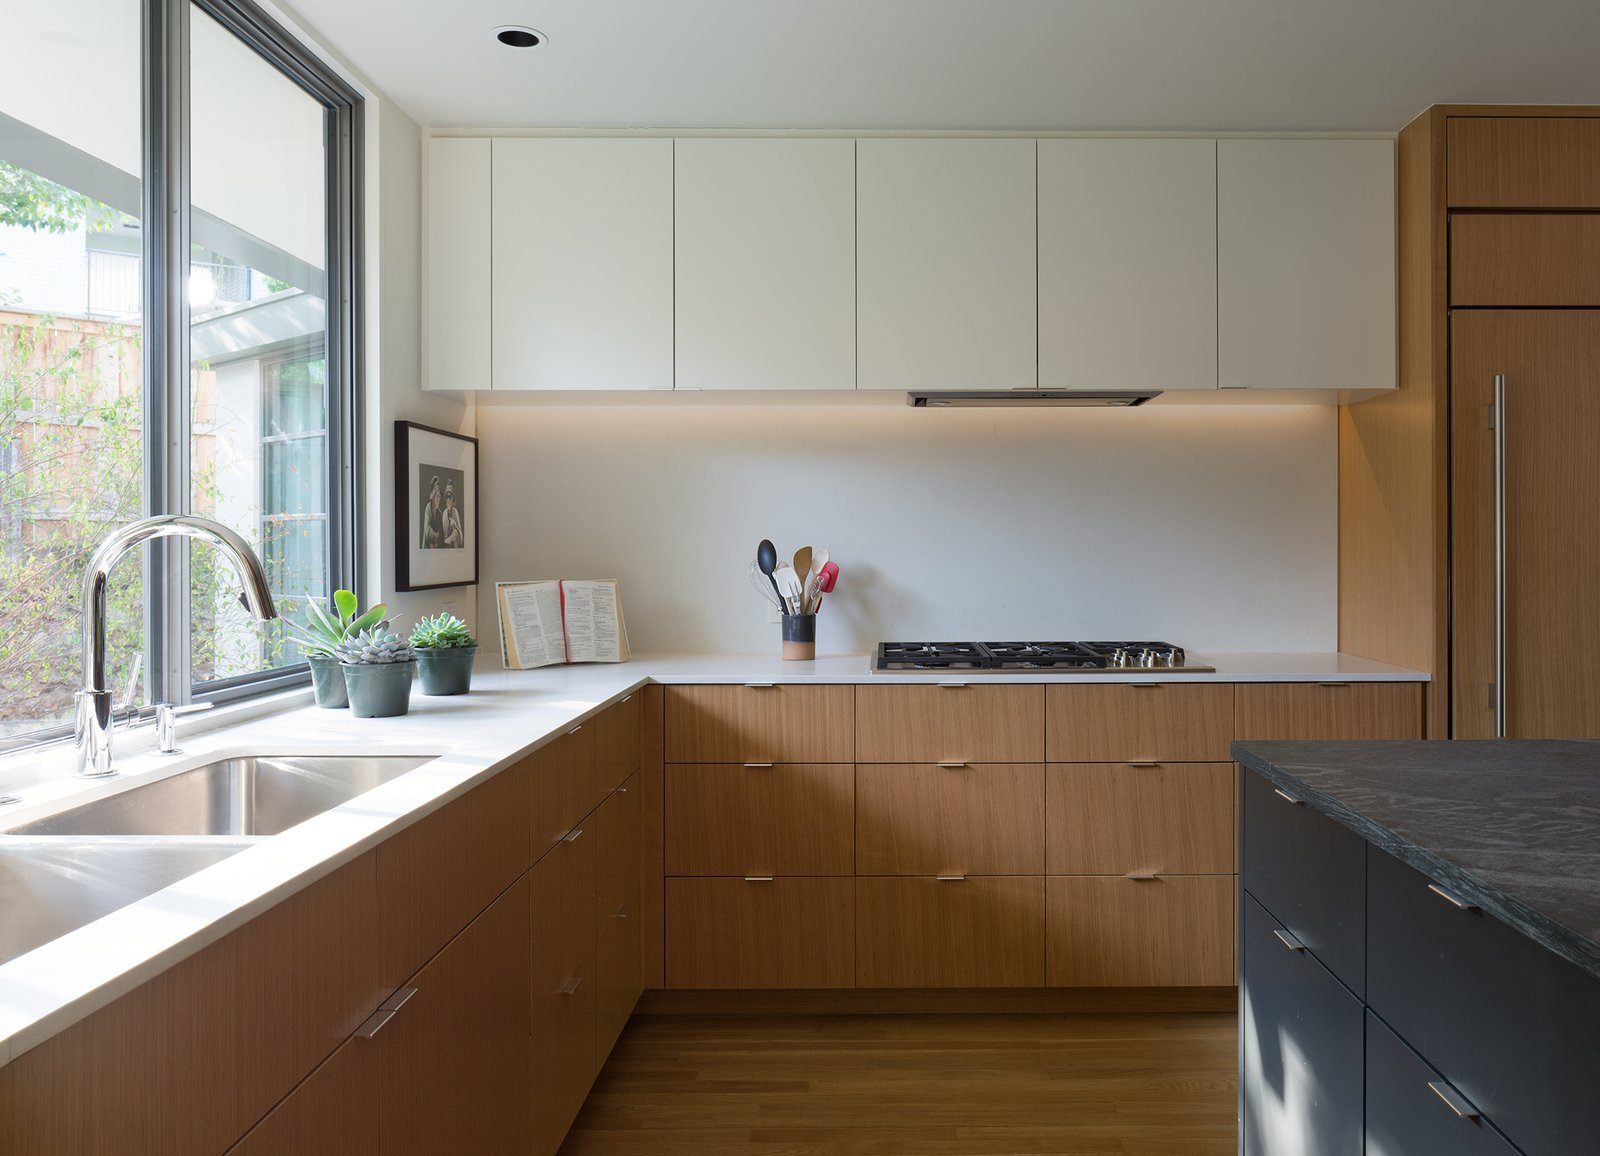 Kitchen, Concrete Counter, Light Hardwood Floor, Undermount Sink, Cooktops, Recessed Lighting, Stone Counter, and Refrigerator  Inwood Place by Tim Cuppett Architects